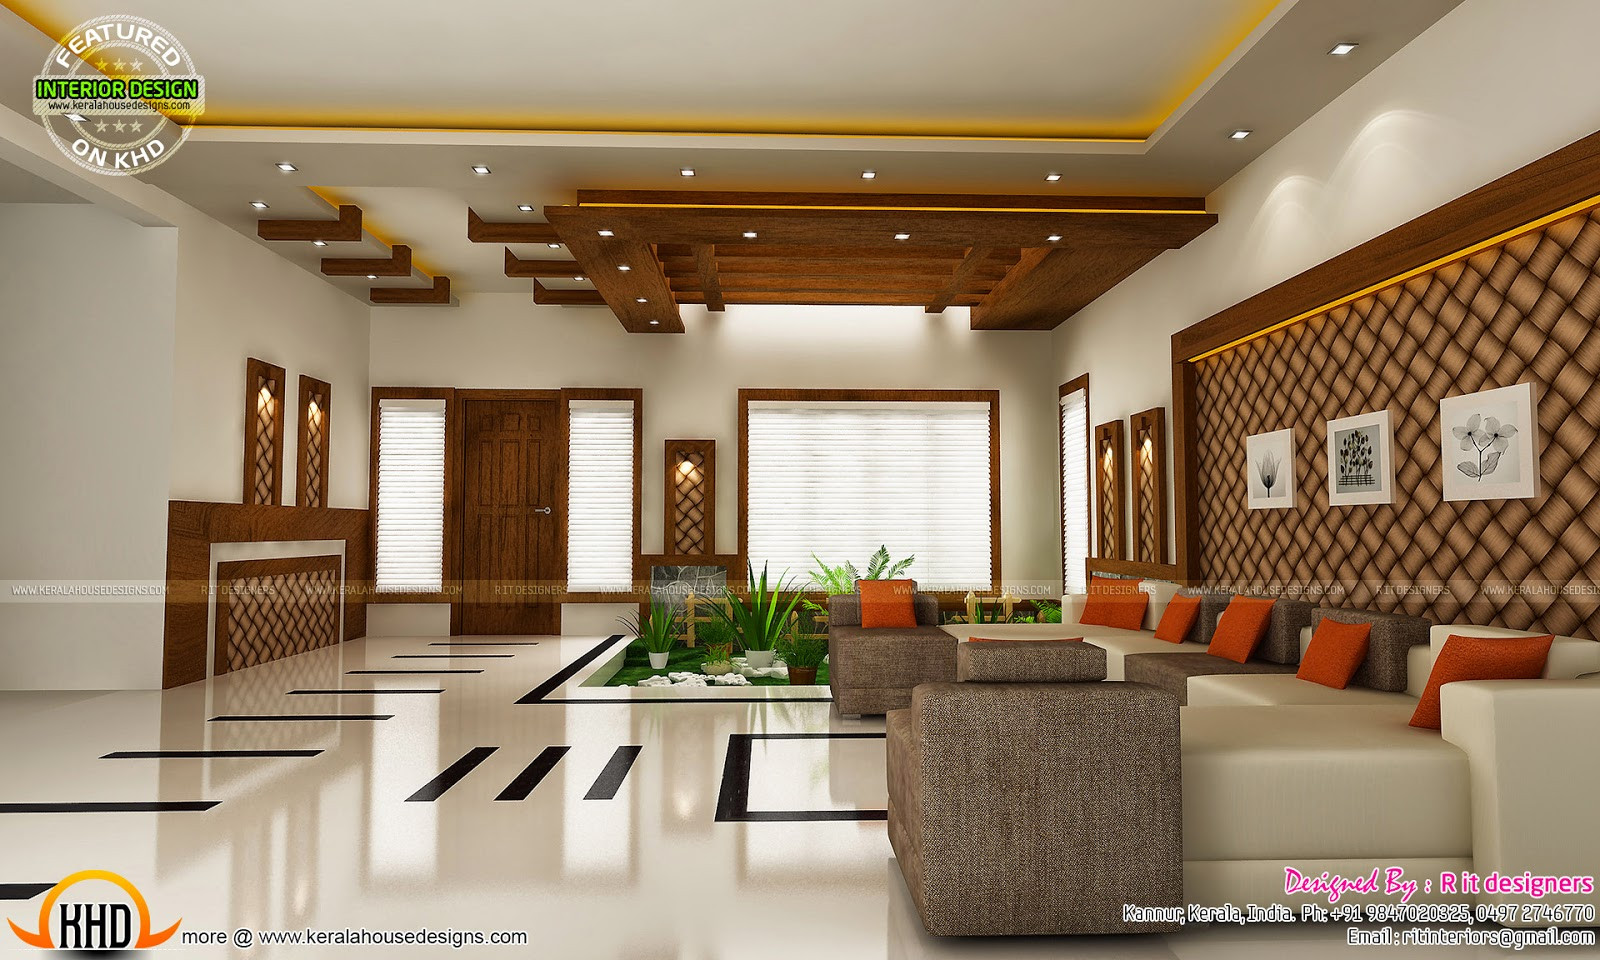 Modern and unique dining kitchen interior kerala home for Interior designs in house